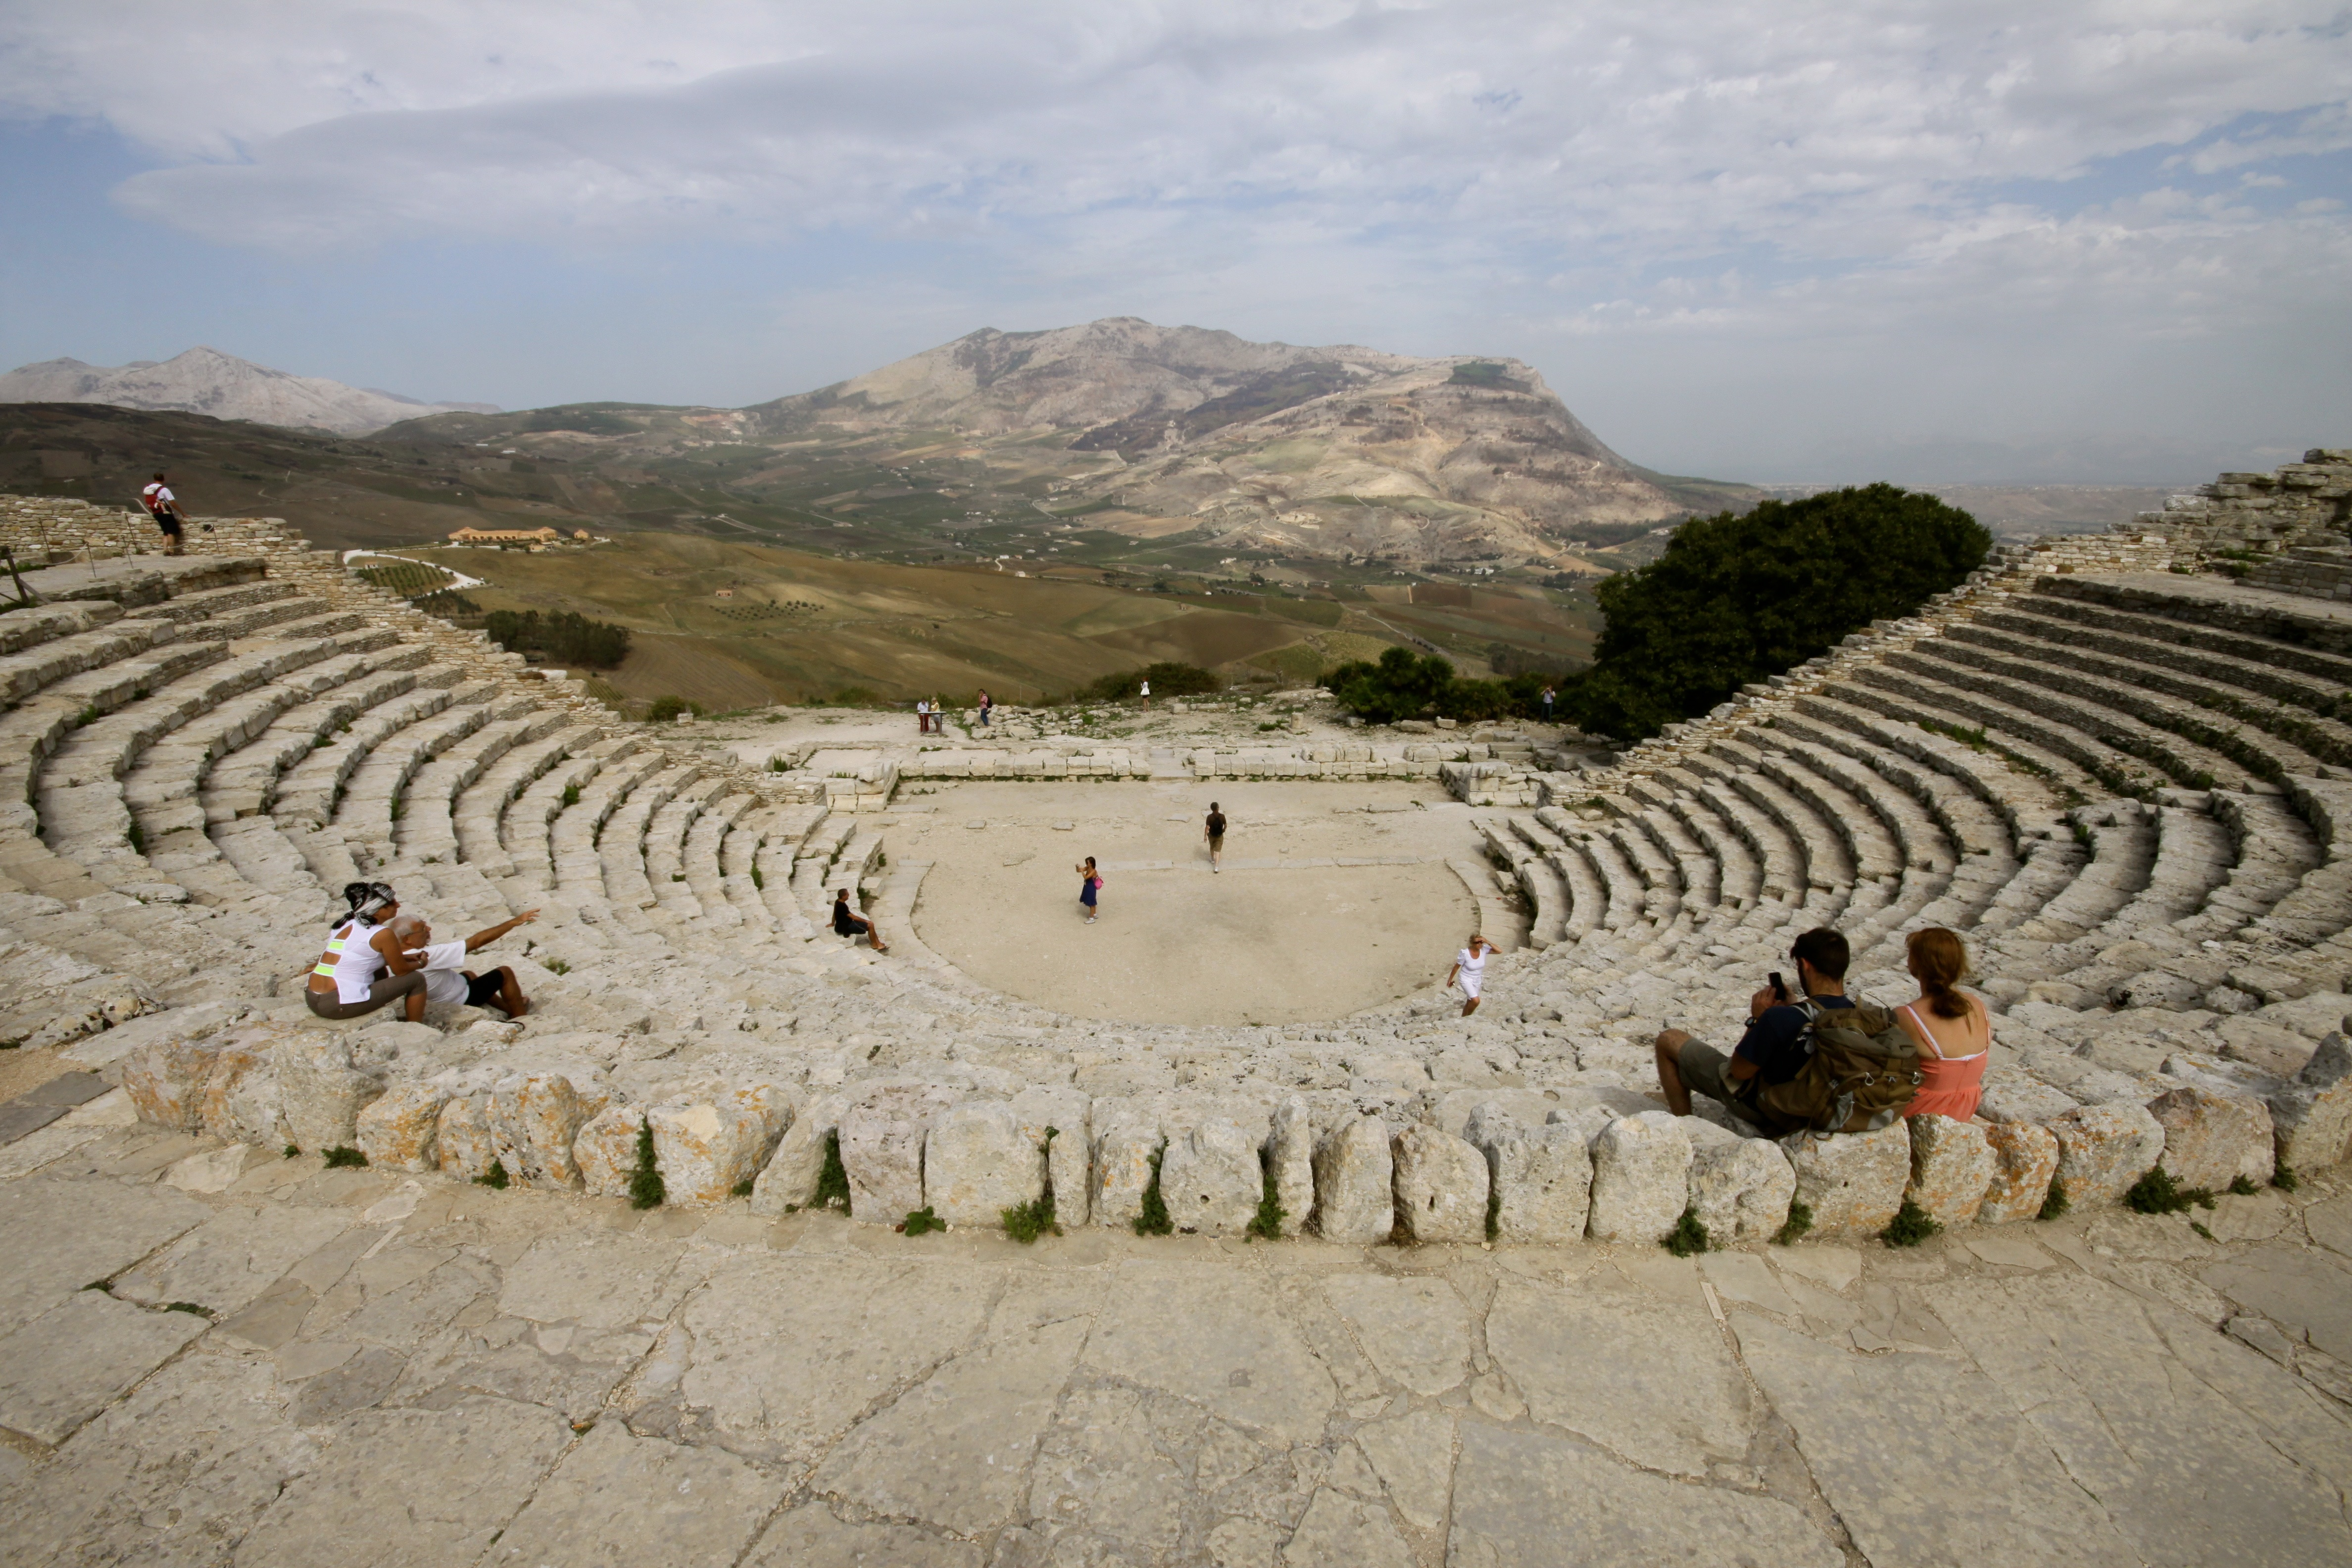 the origins of ancient greek drama Even if there are theatre-like entertainments elsewhere in the greek world prior to tragedy, there is no competent ancient source that does not recognize the athenians in some way as the inventors of drama—there is not even a shred of credible evidence to suggest otherwise—so to else, the dynamic combination of thespis and aeschylus, not some poorly attested social institution, was the real force behind the drive to create this art form.